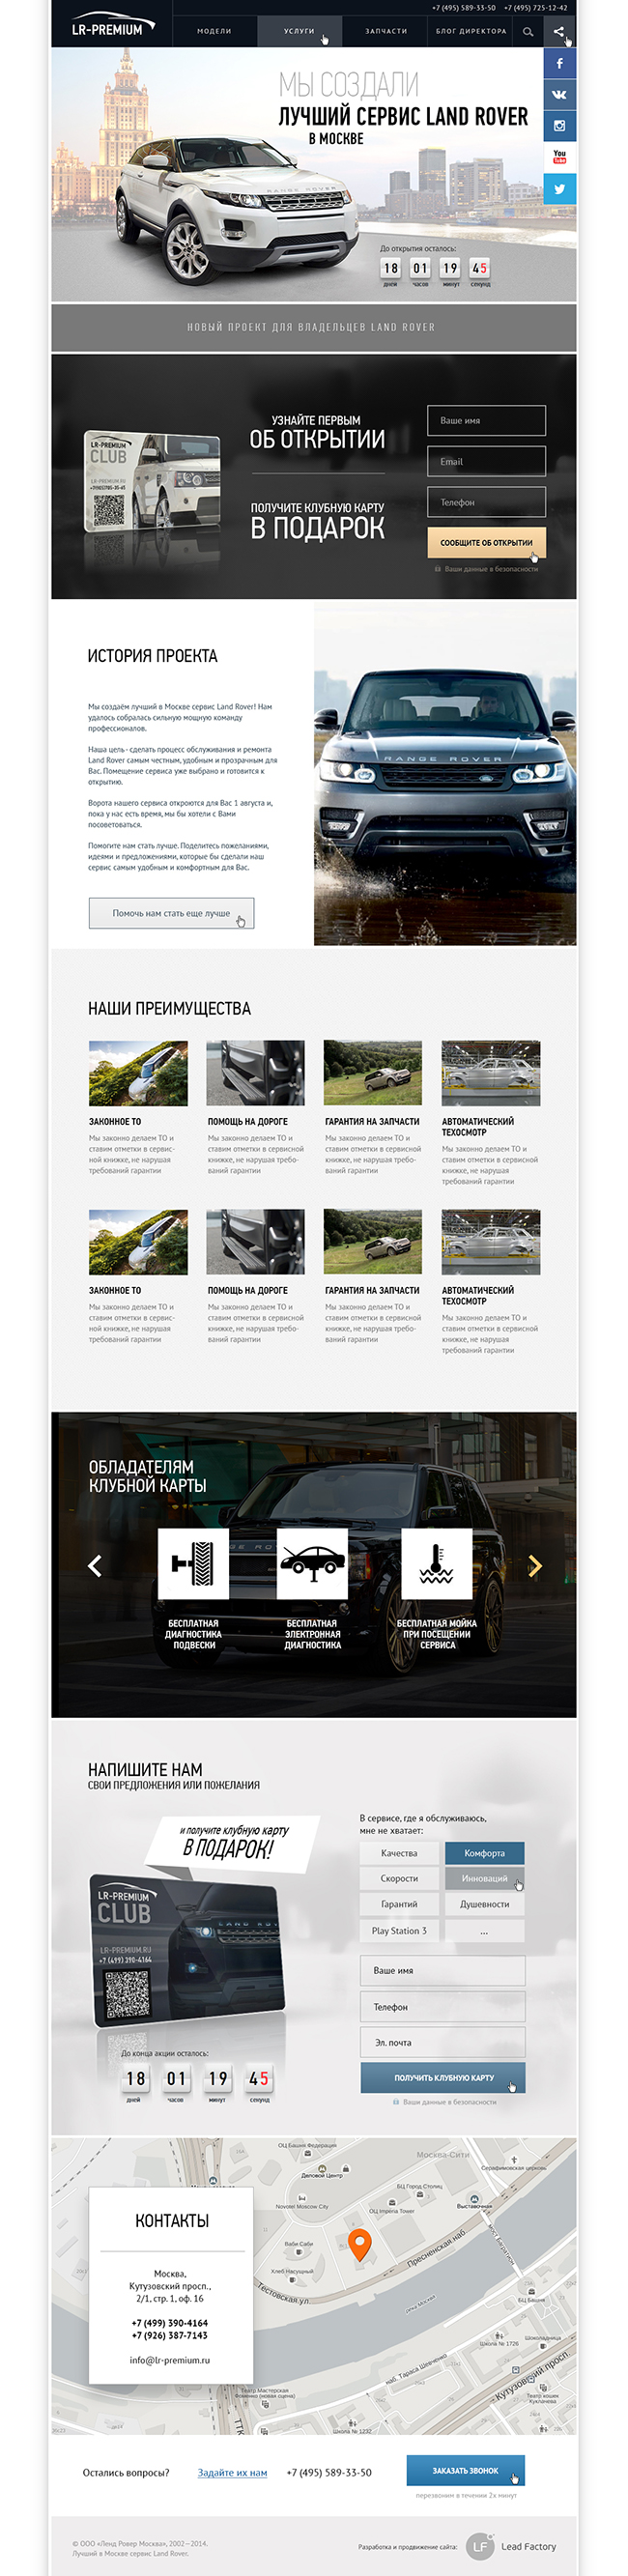 Multi Landing Page Сервиса Lend Rover